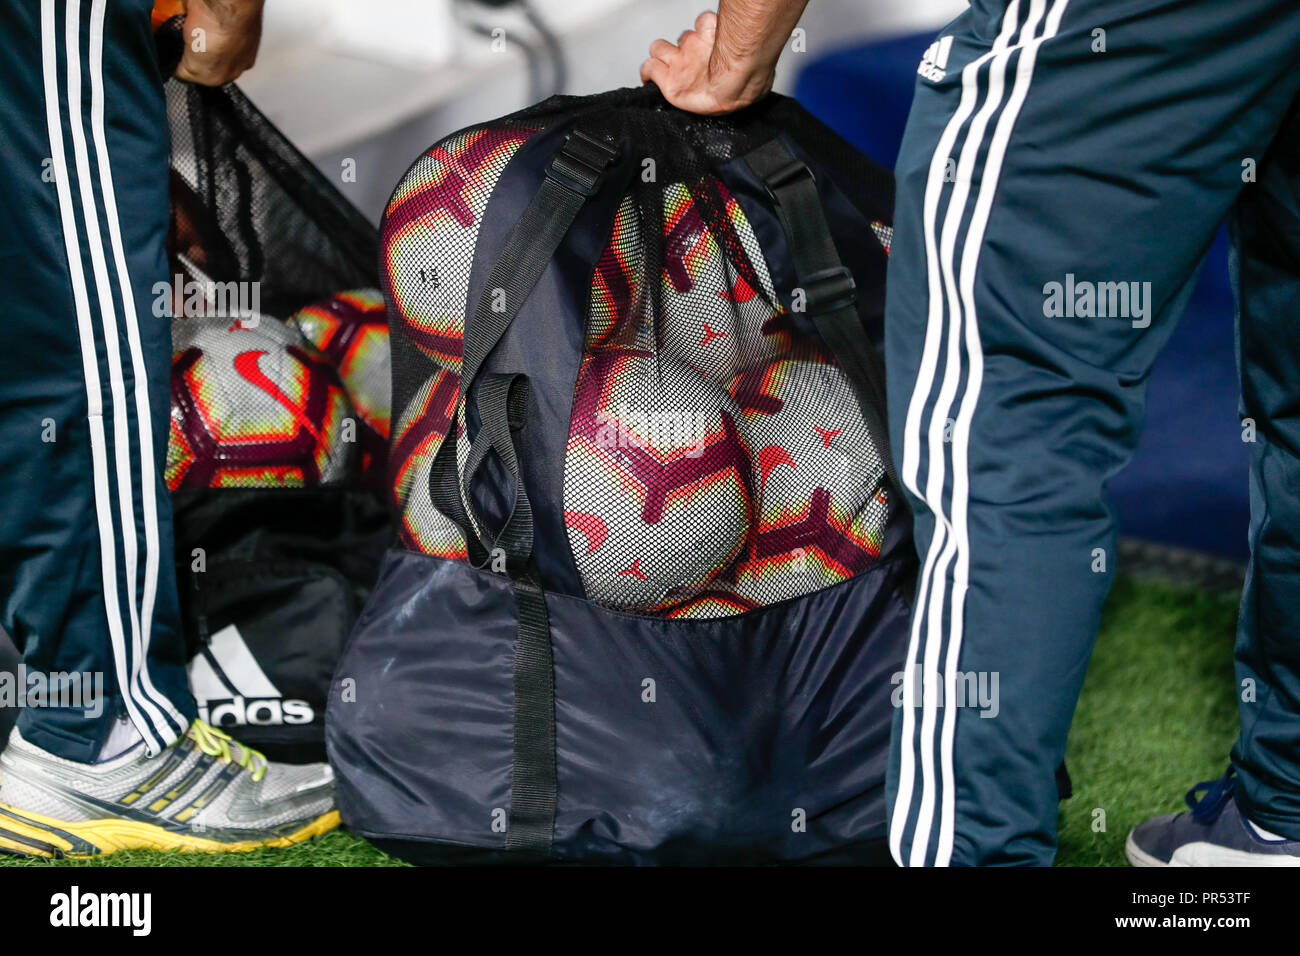 ccae37815b0 Madrid, Spain. September 29, 2018 - Nike balls in ADIDAS bag during the